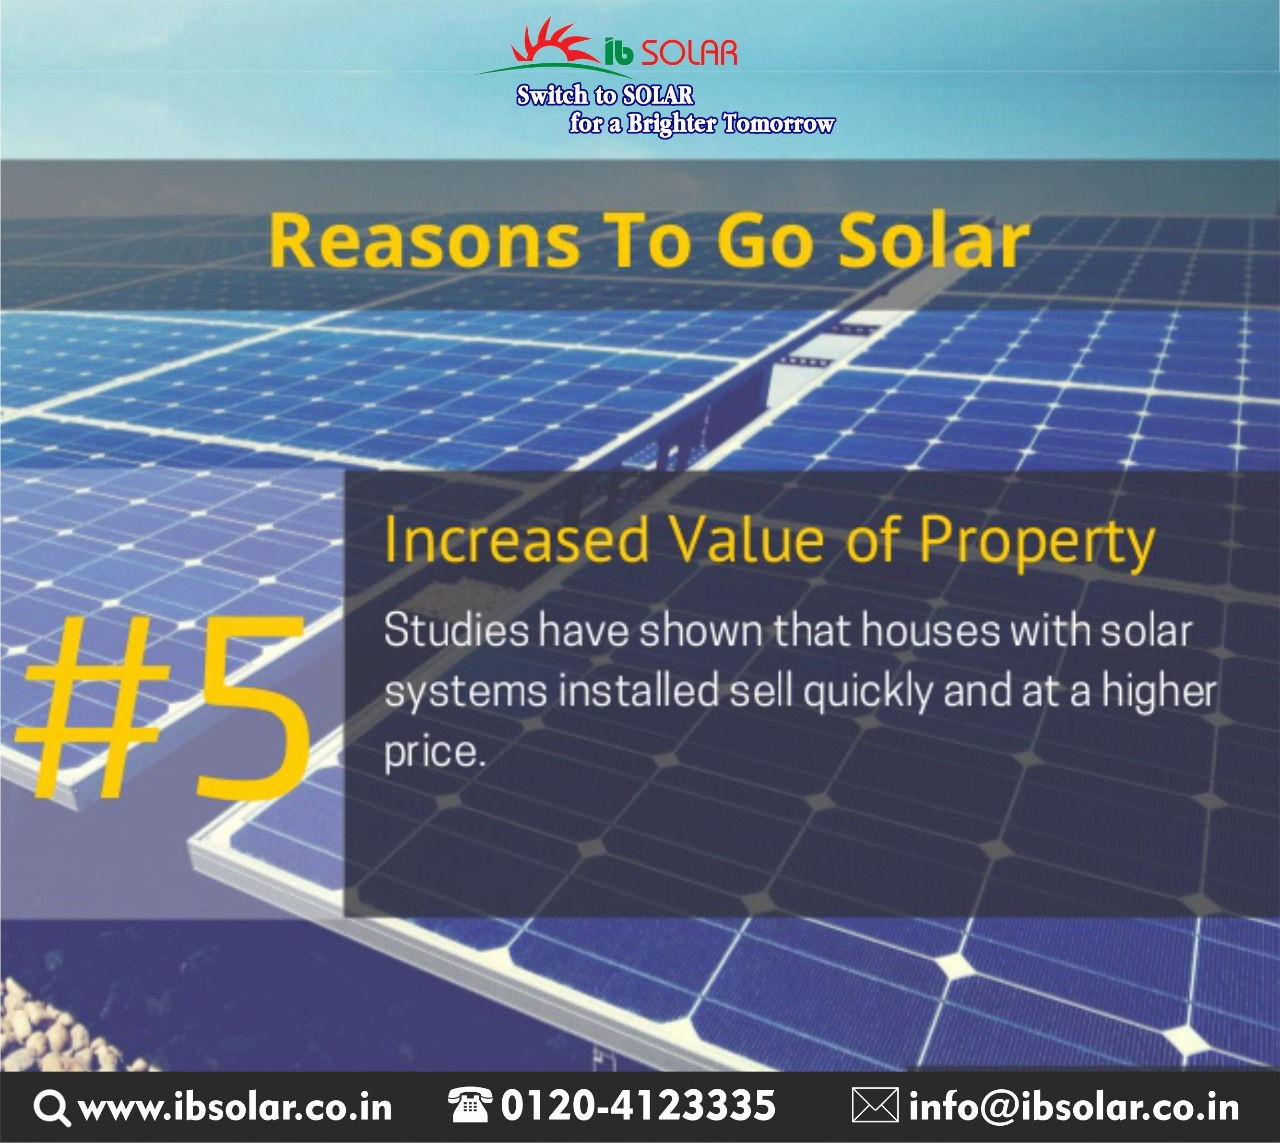 Reasons To Go Solar5 Increased Value of Property.